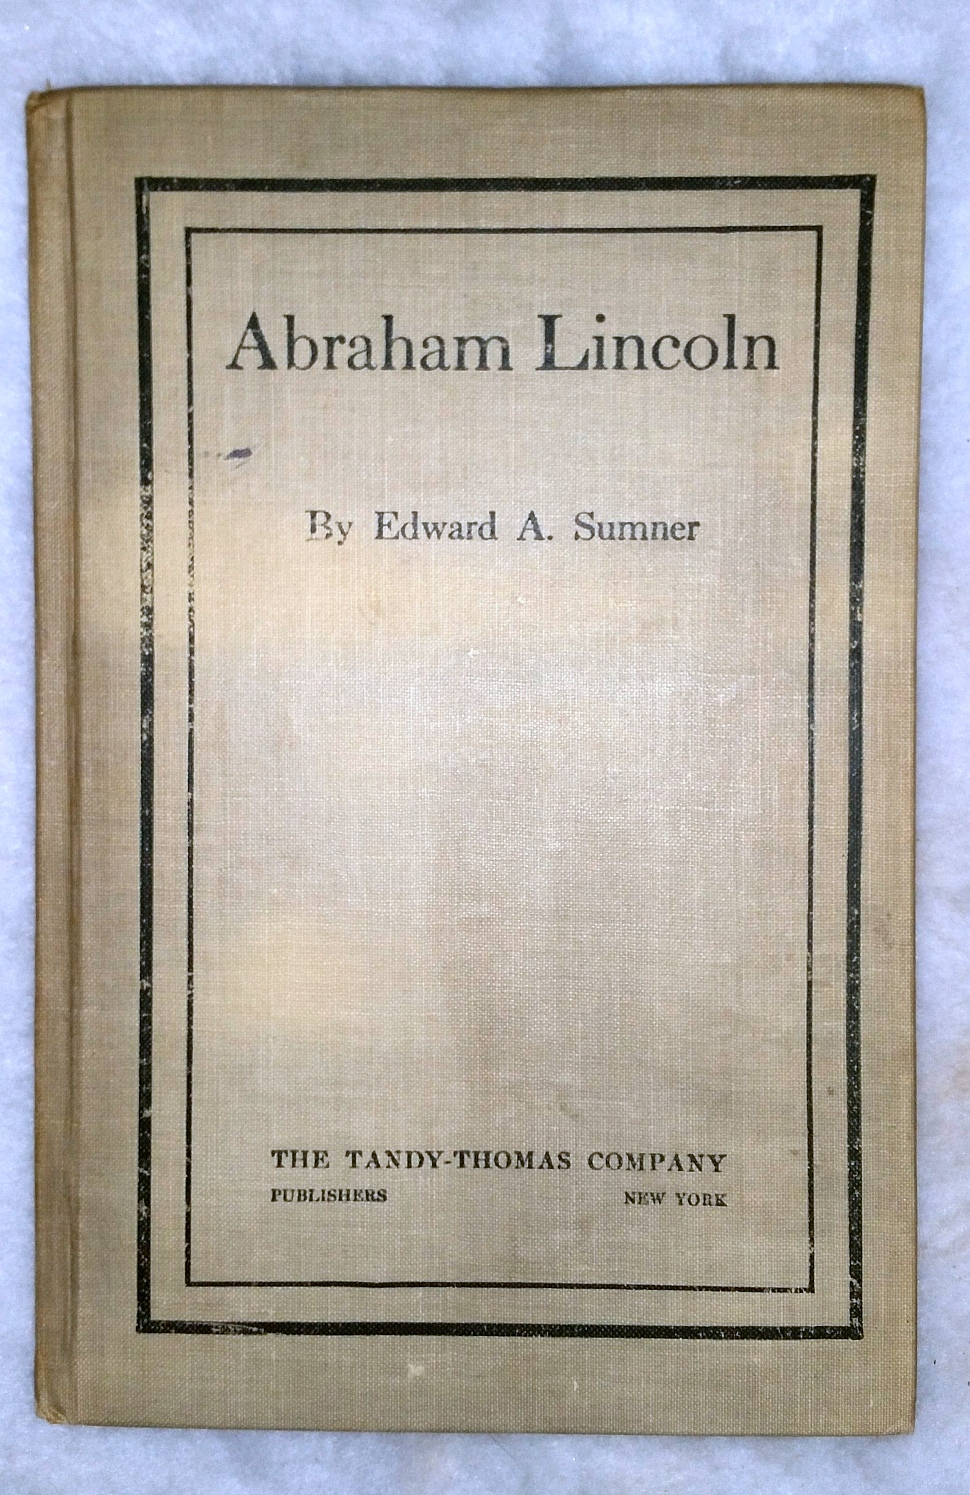 Image for Abraham Lincoln:  An Address Delivered Before the Men's League of the Broadway Tabernacle Church of New York, Feb. 10th 1902